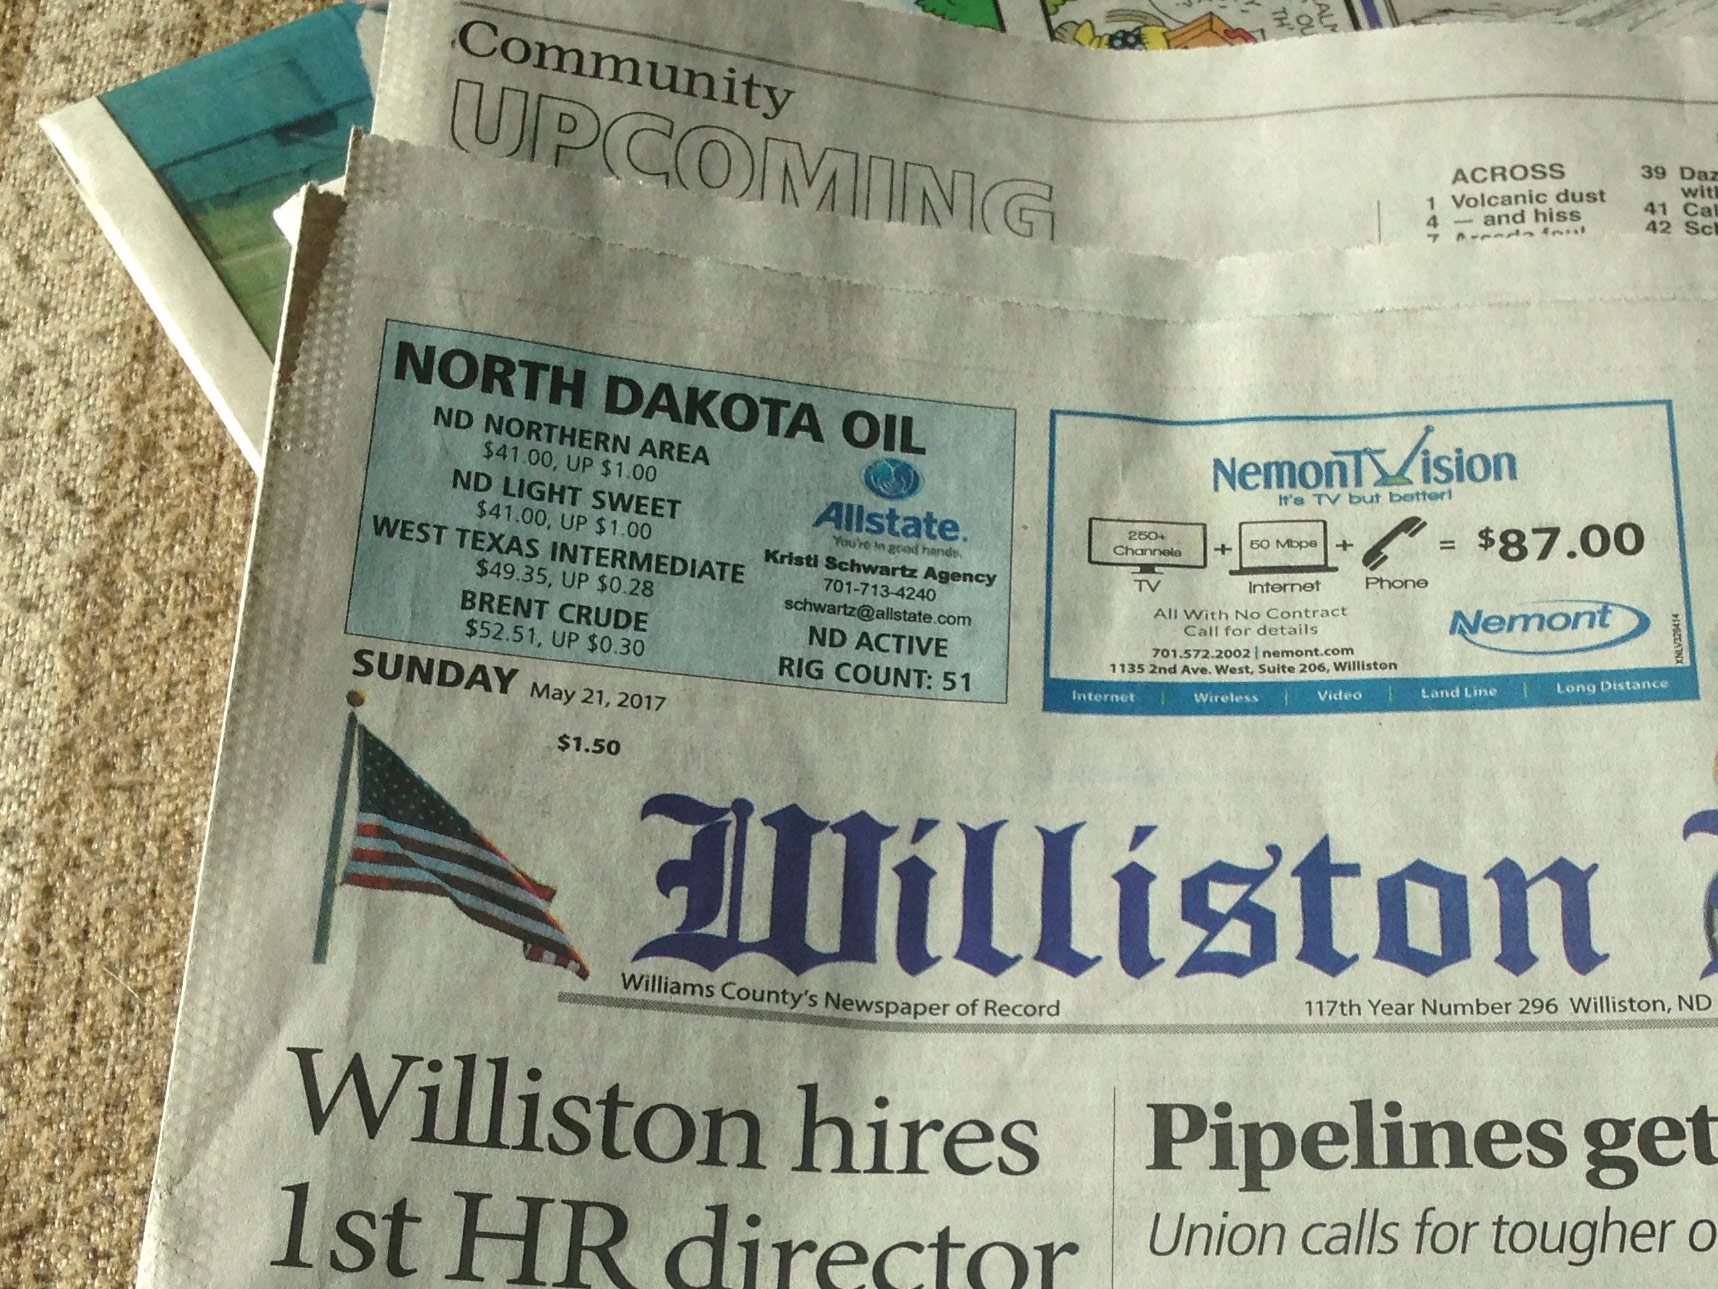 Williston Herald  reports daily oil prices on their front page